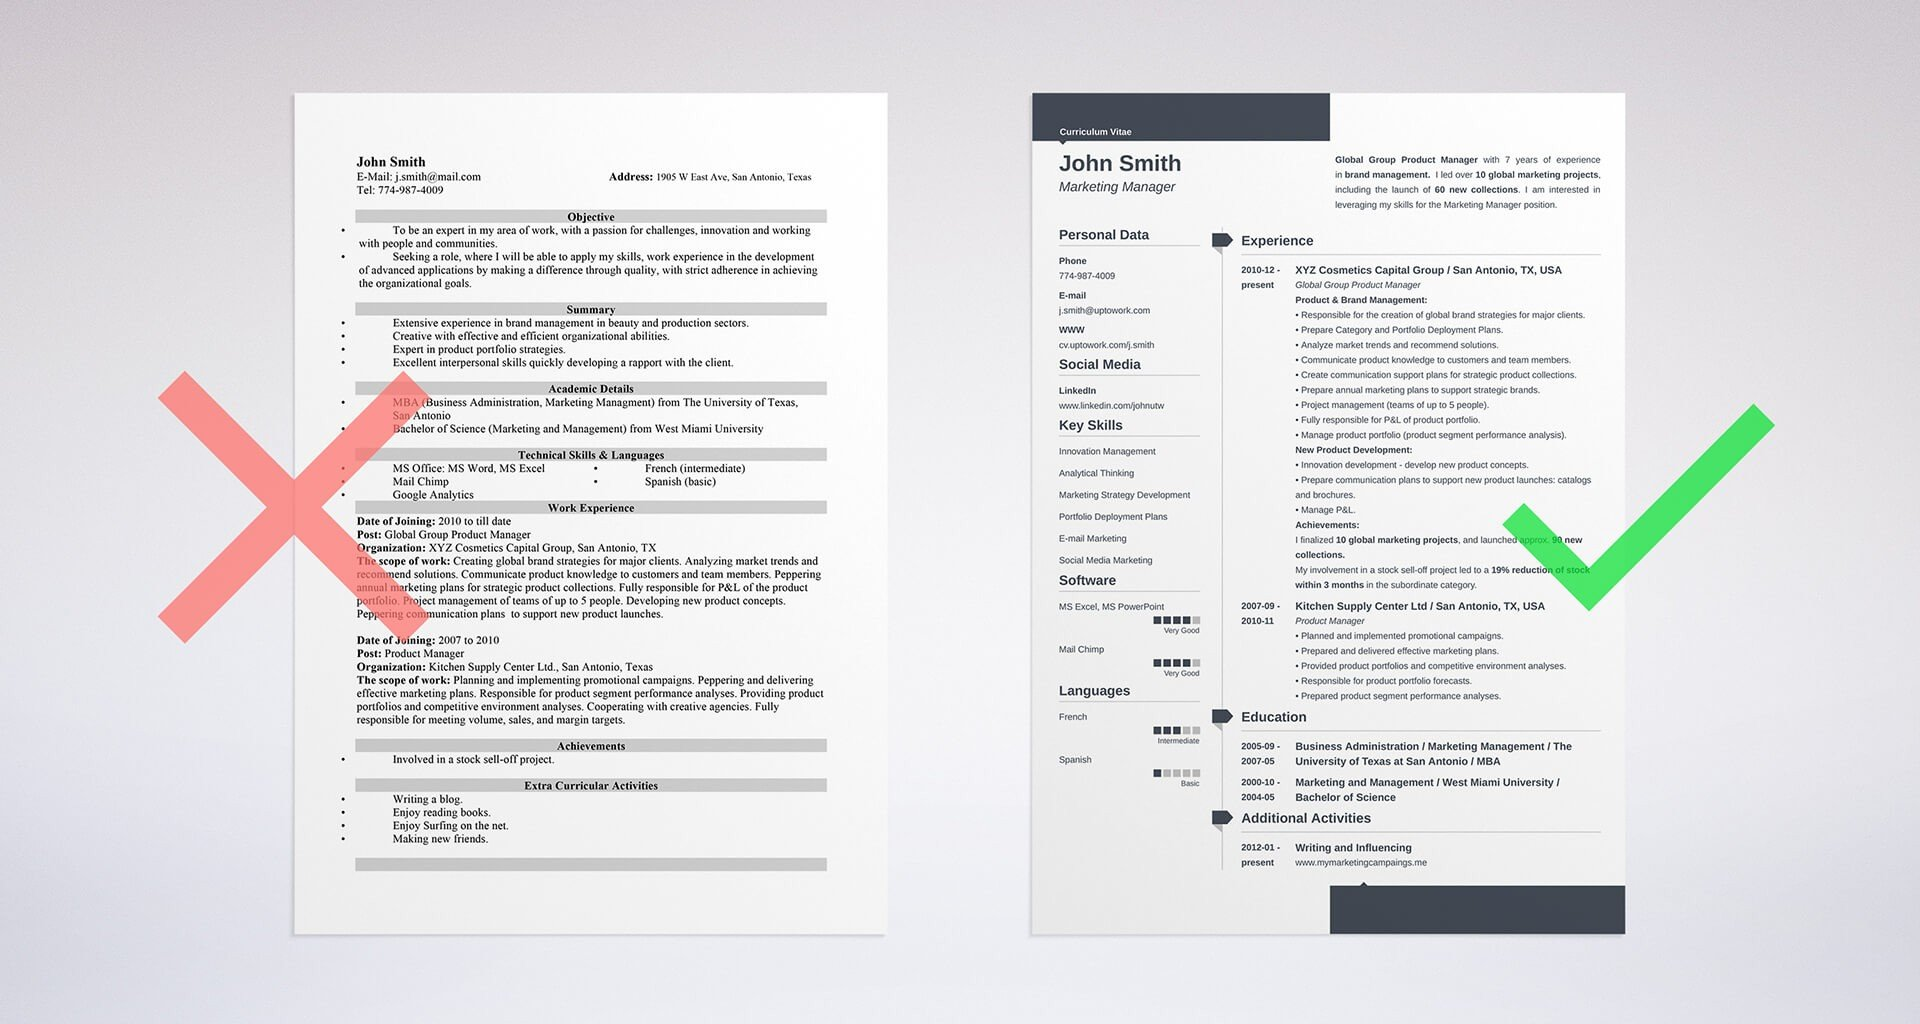 Beautiful Uptowork Regarding Skills And Abilities For Resume Examples